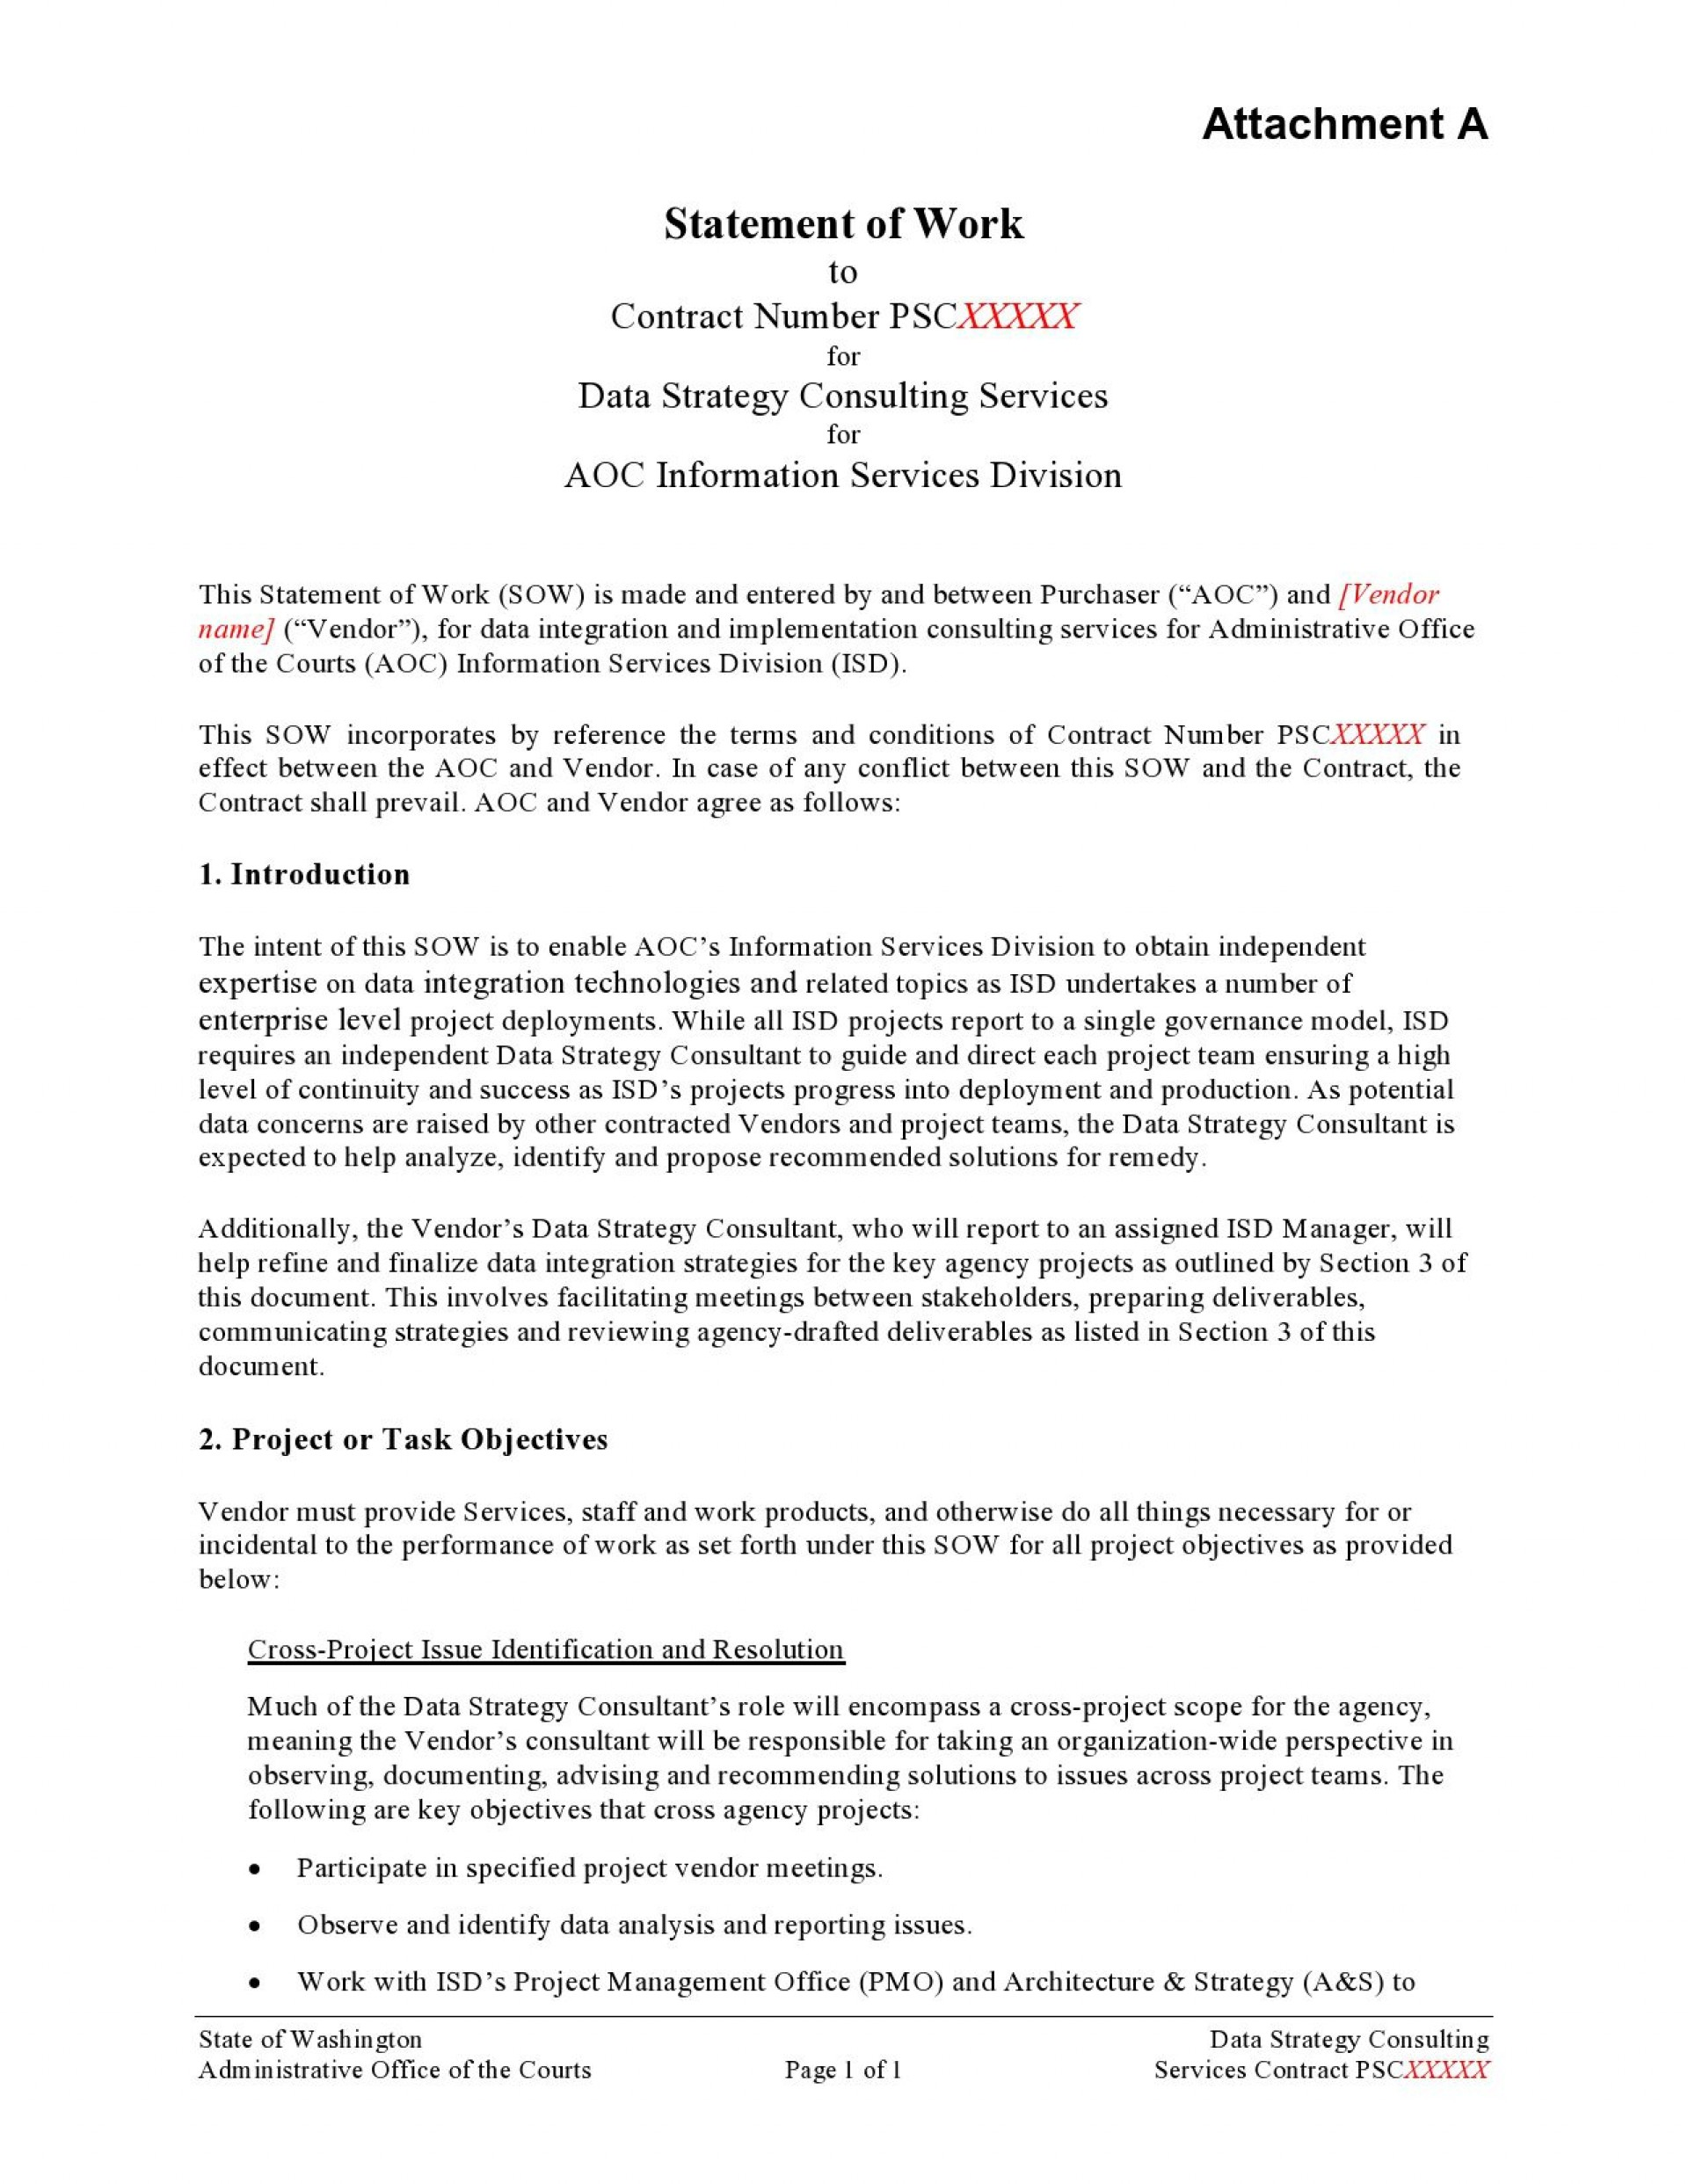 008 Best Statement Of Work Example Software Consulting Highest Quality 1920